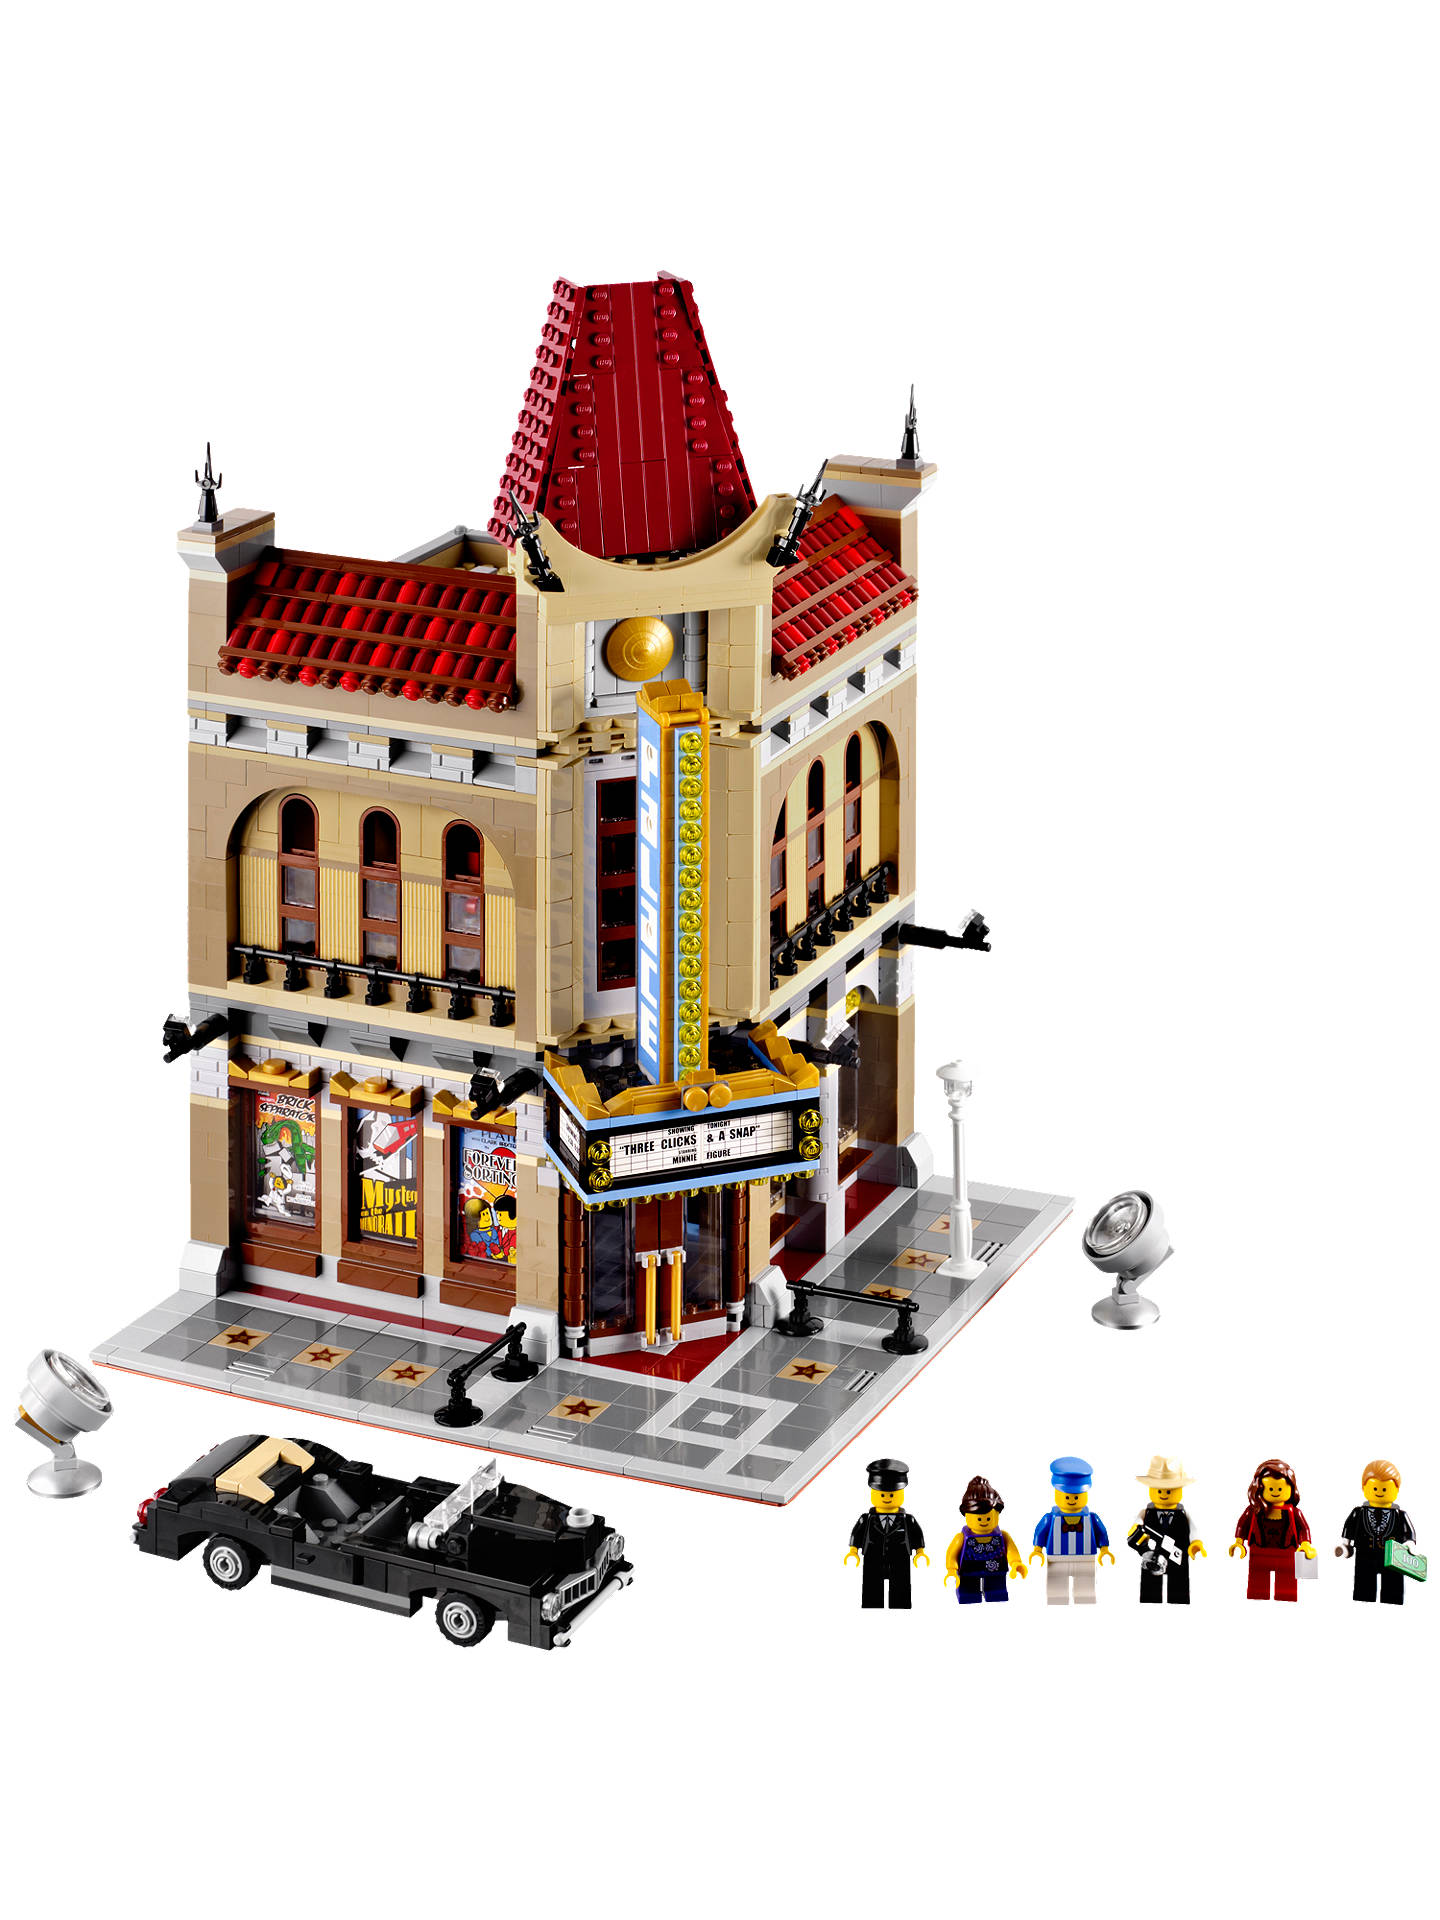 BuyLEGO Creator 10232 Palace Cinema Online at johnlewis.com